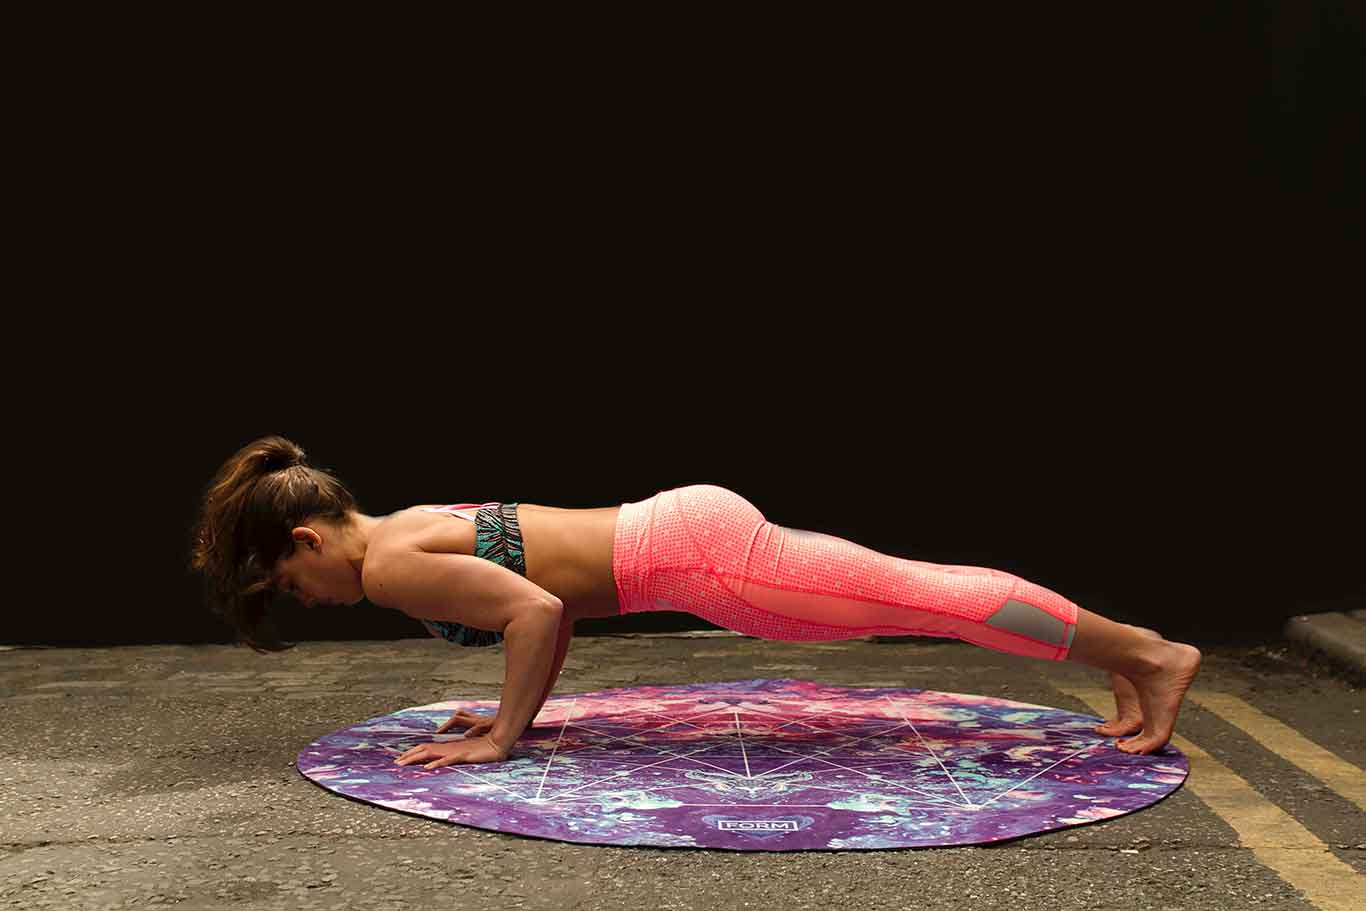 How Many Calories Can I Burn Doing Plank Exercises?